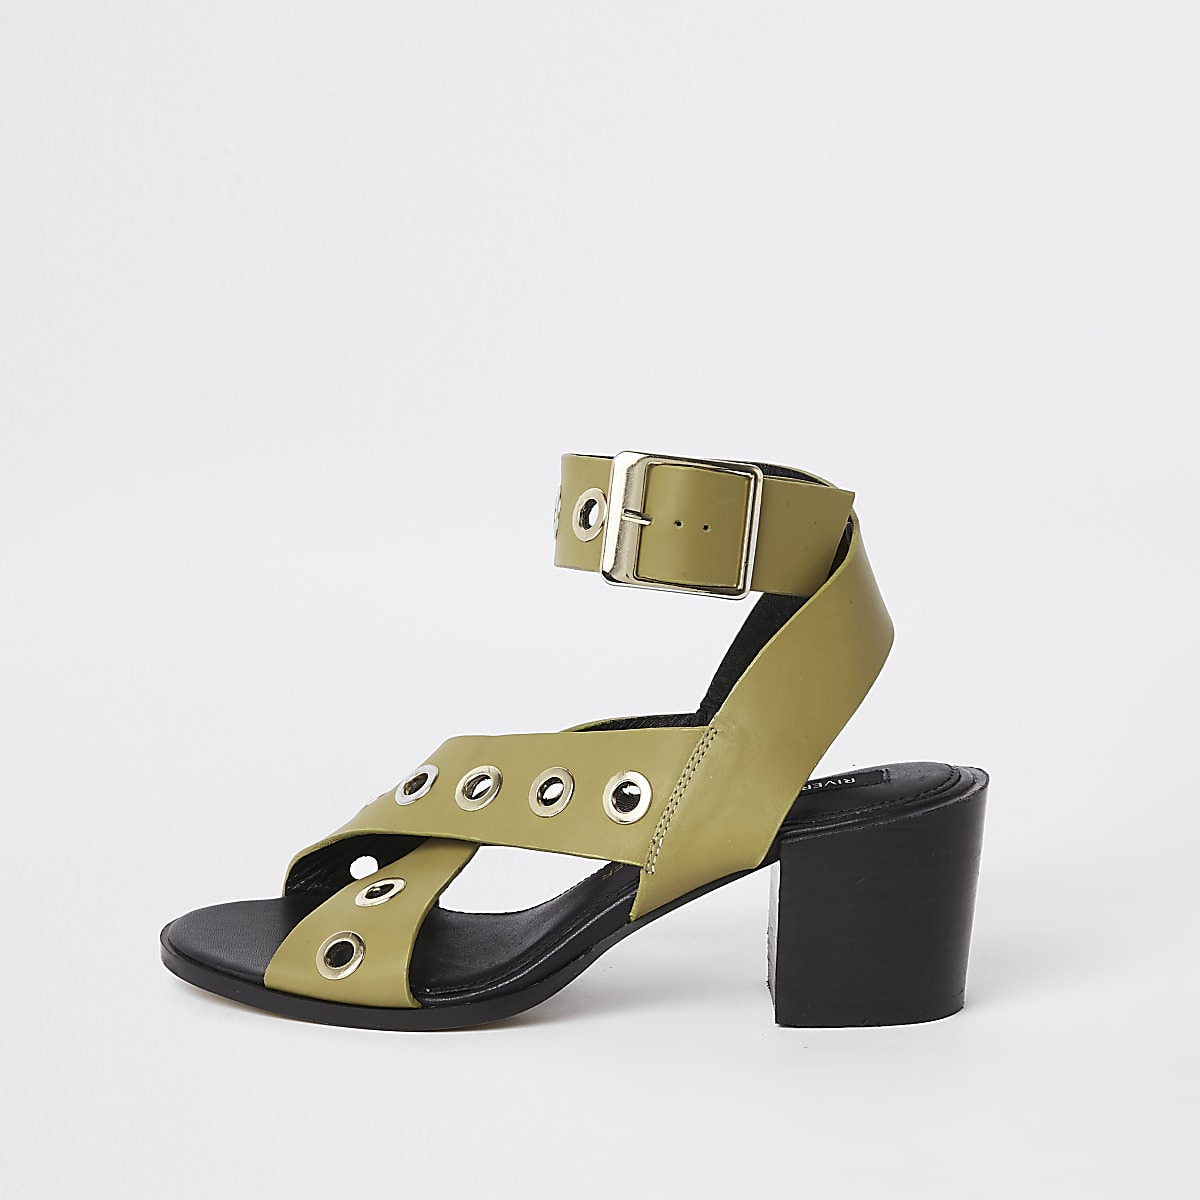 Light green leather eyelet sandals